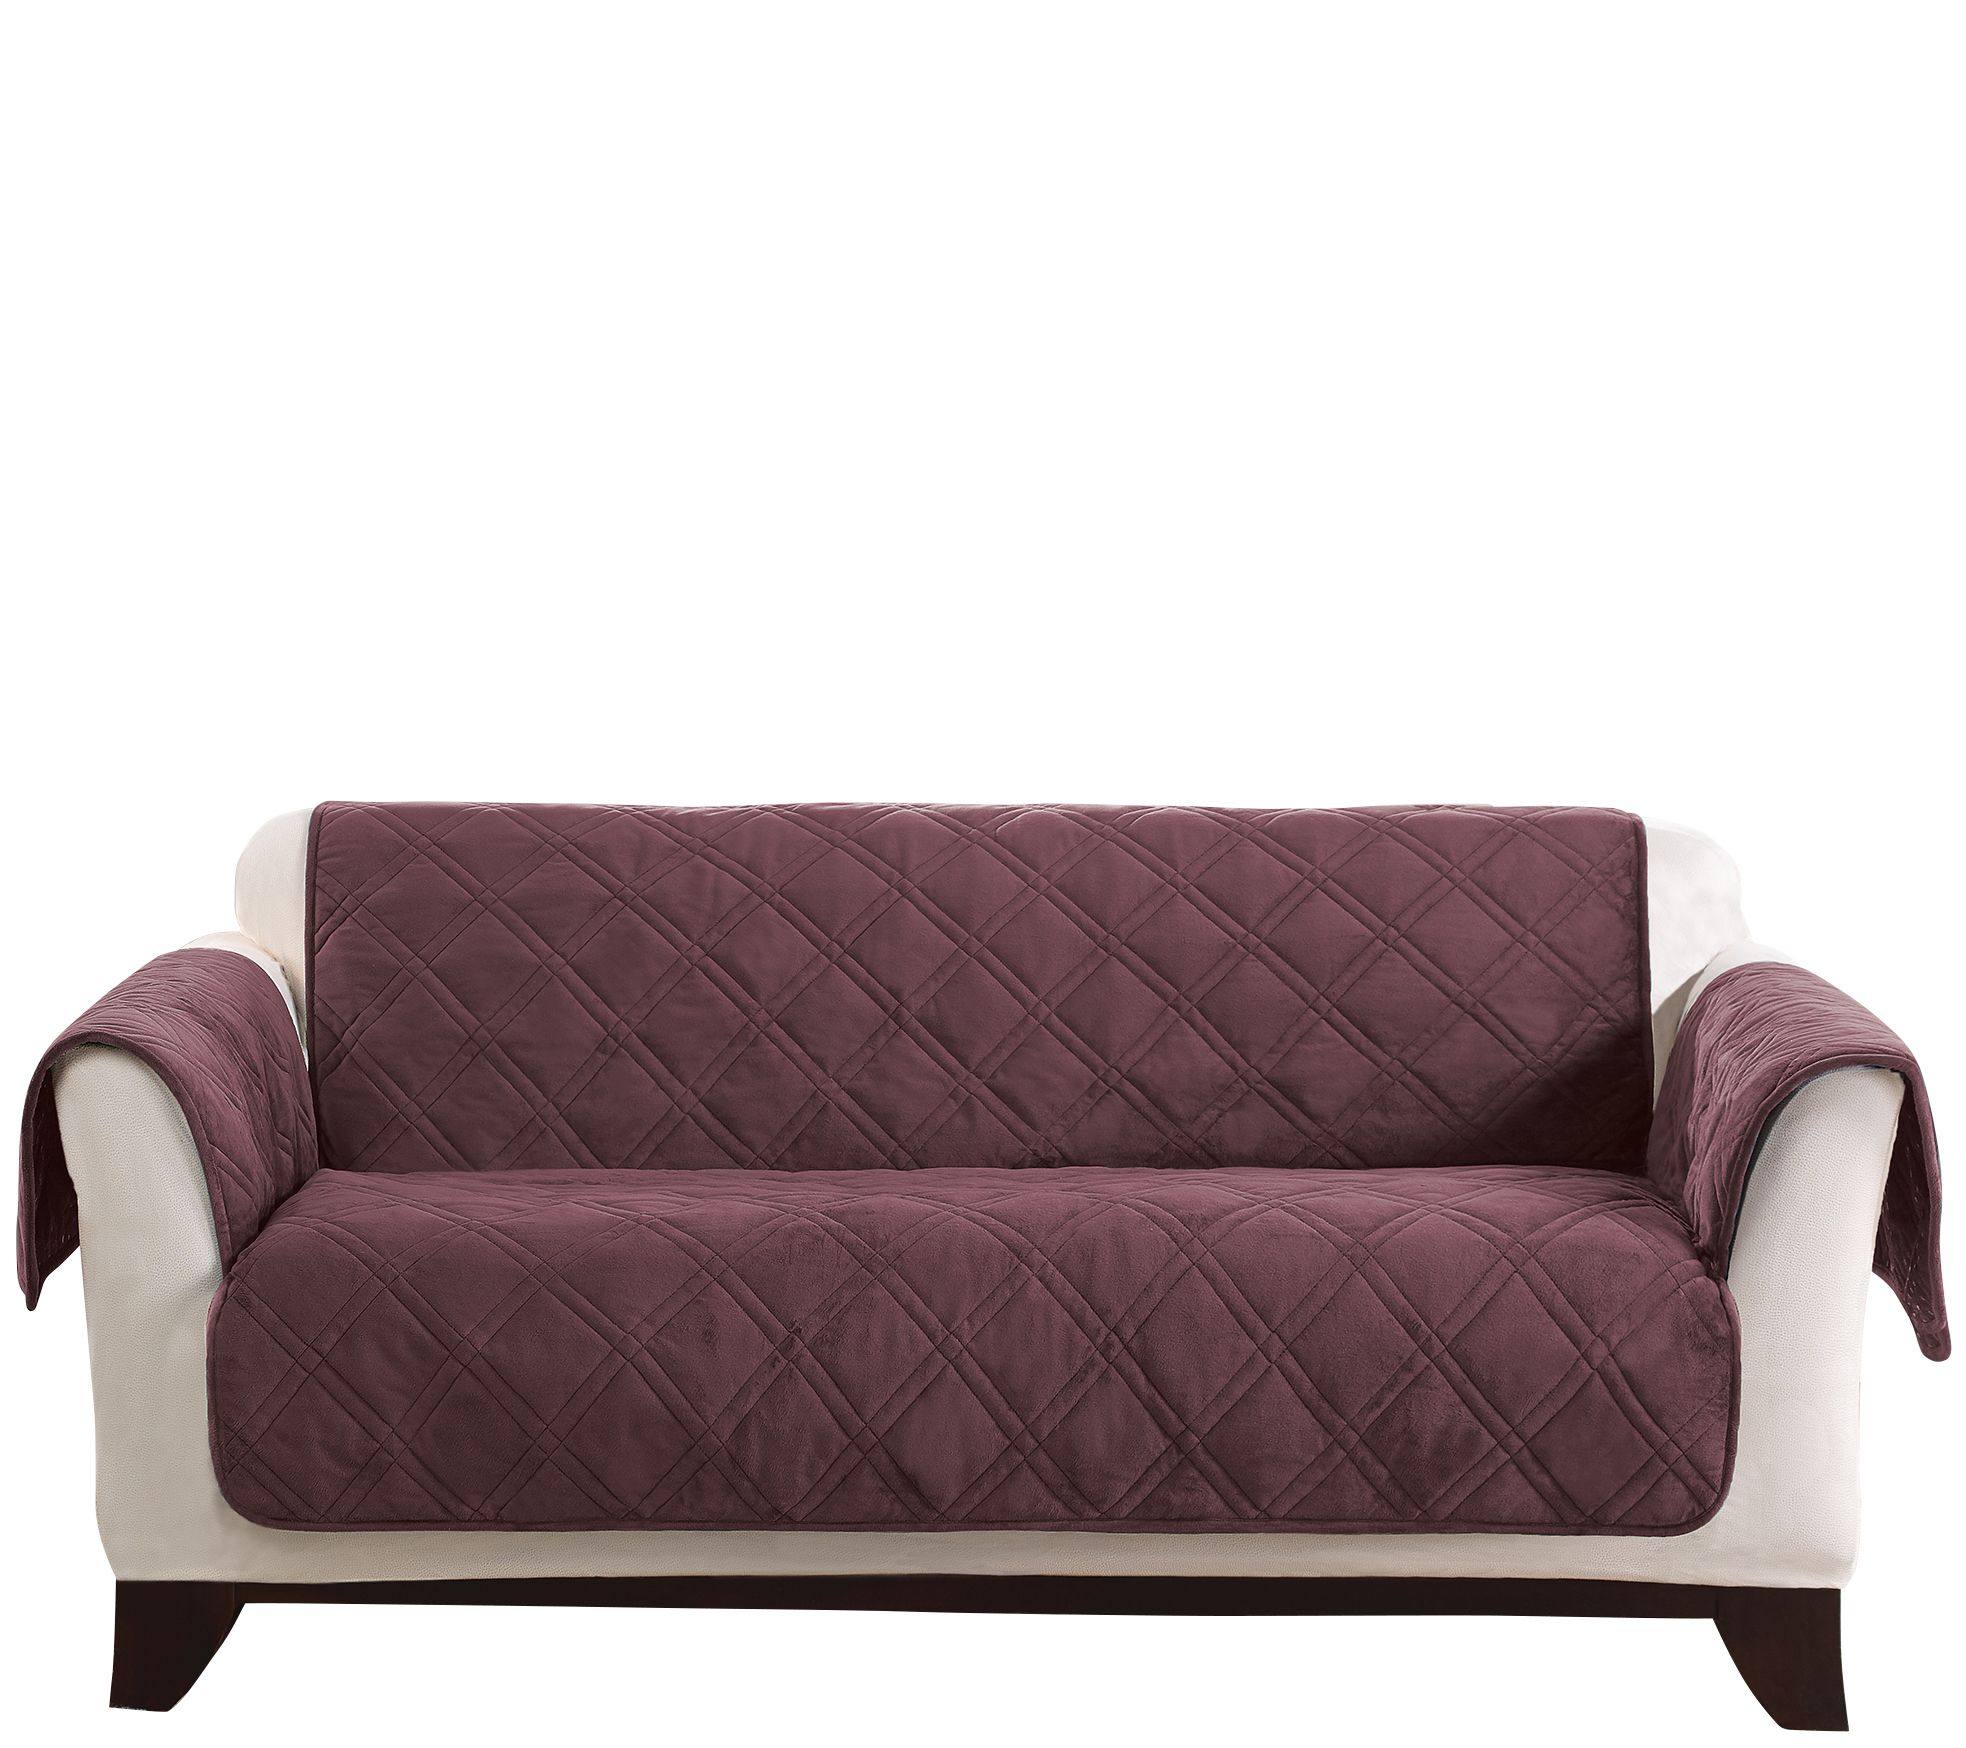 Slipcovers Loveseat Couch Recliner Slipcovers QVCcom